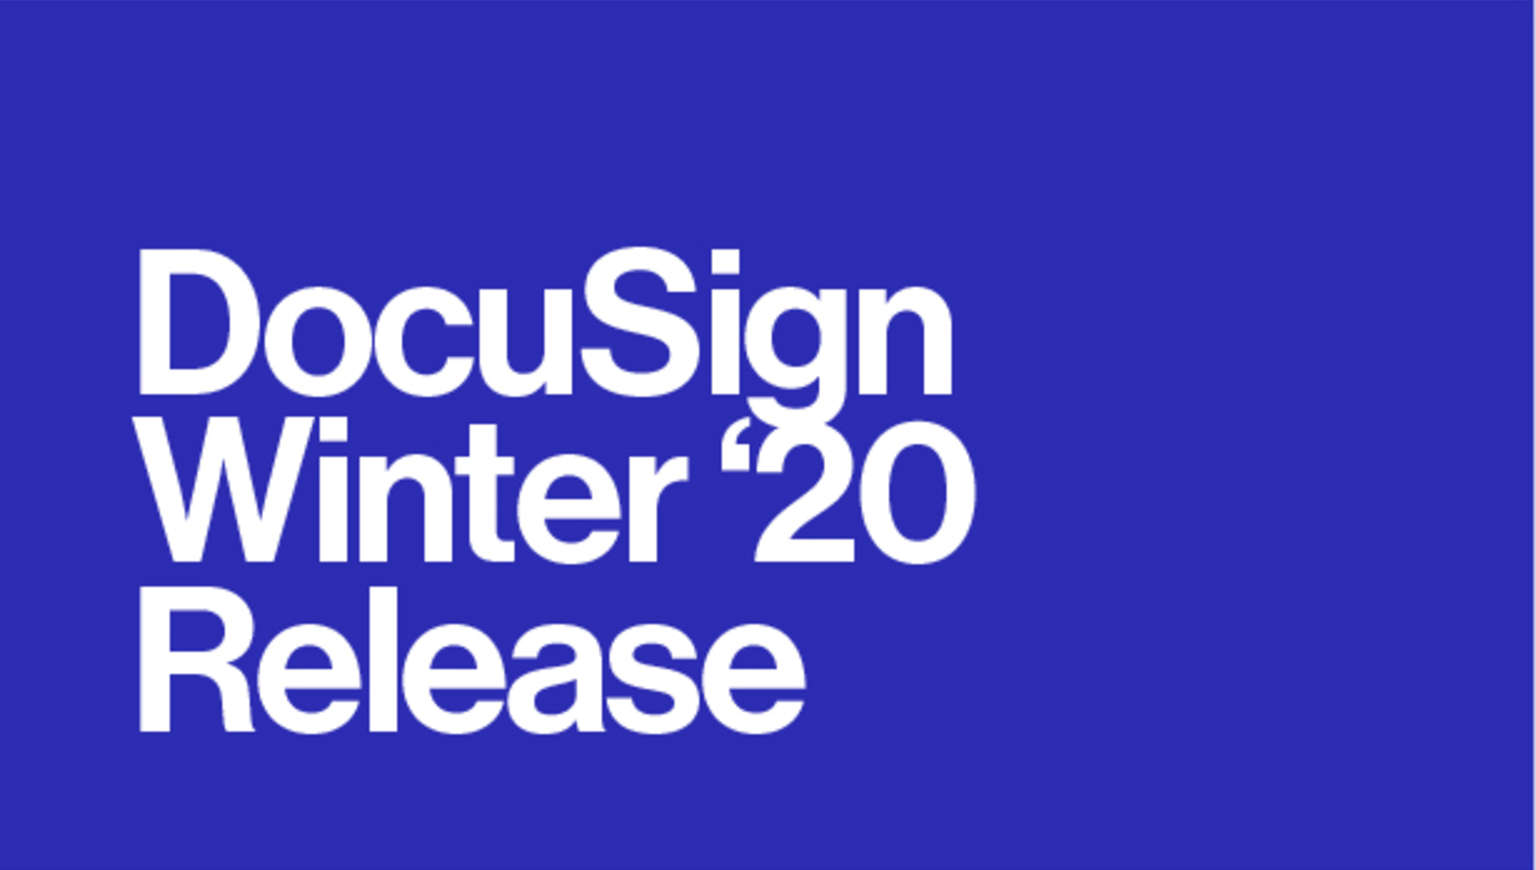 DocuSign Winter '20 Release